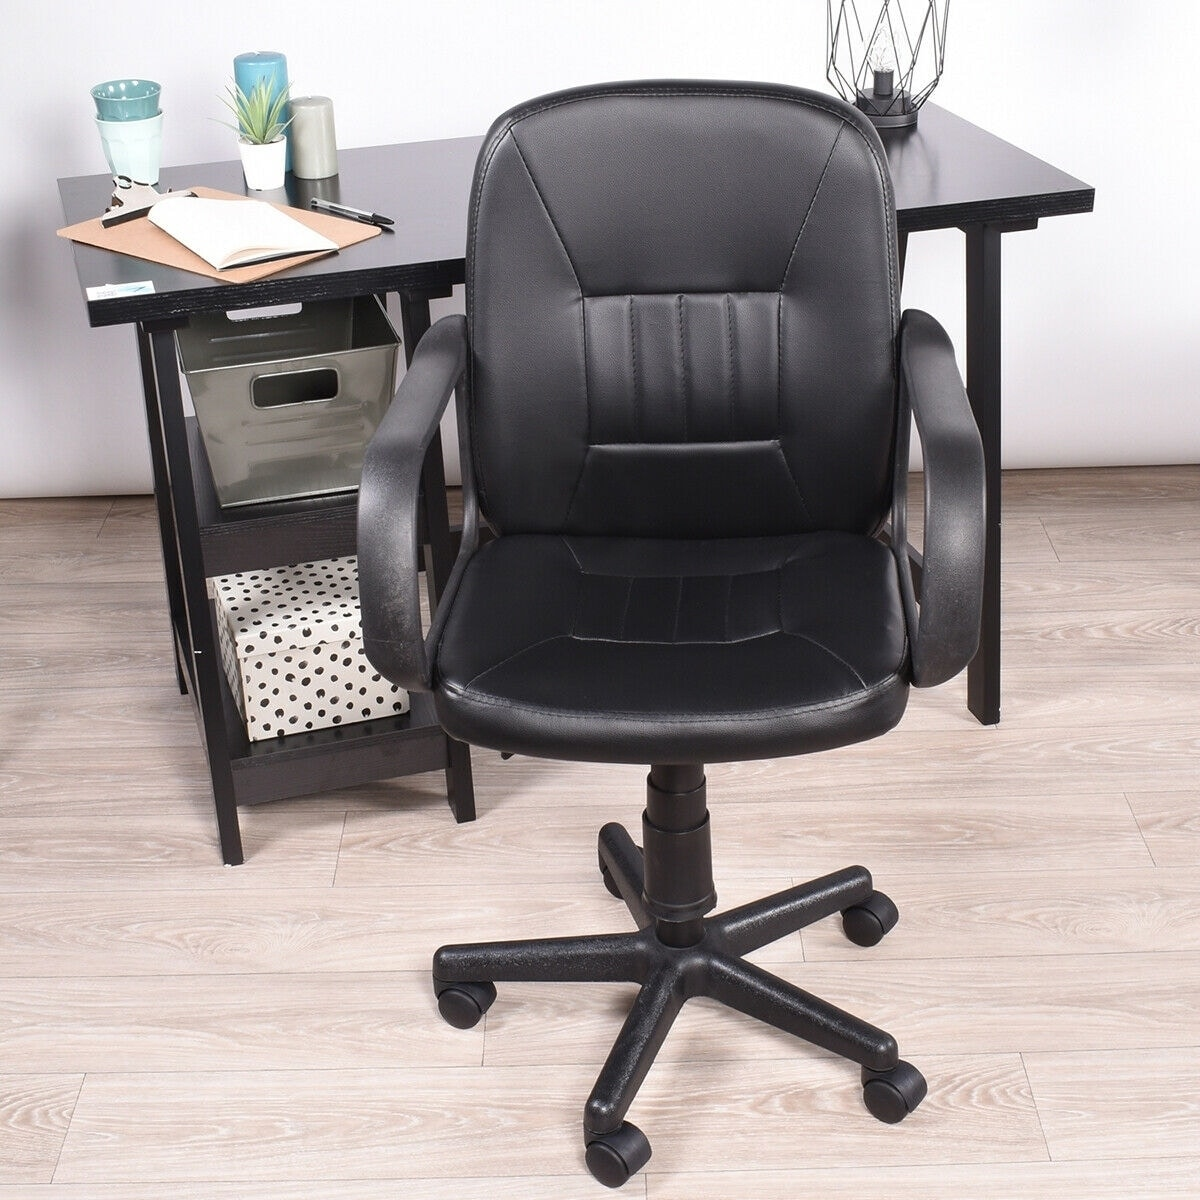 FurnitureR Ergonomic Office Task Chair Swivel PU Leather Black (Black - Faux Leather - Modern & Contemporary)